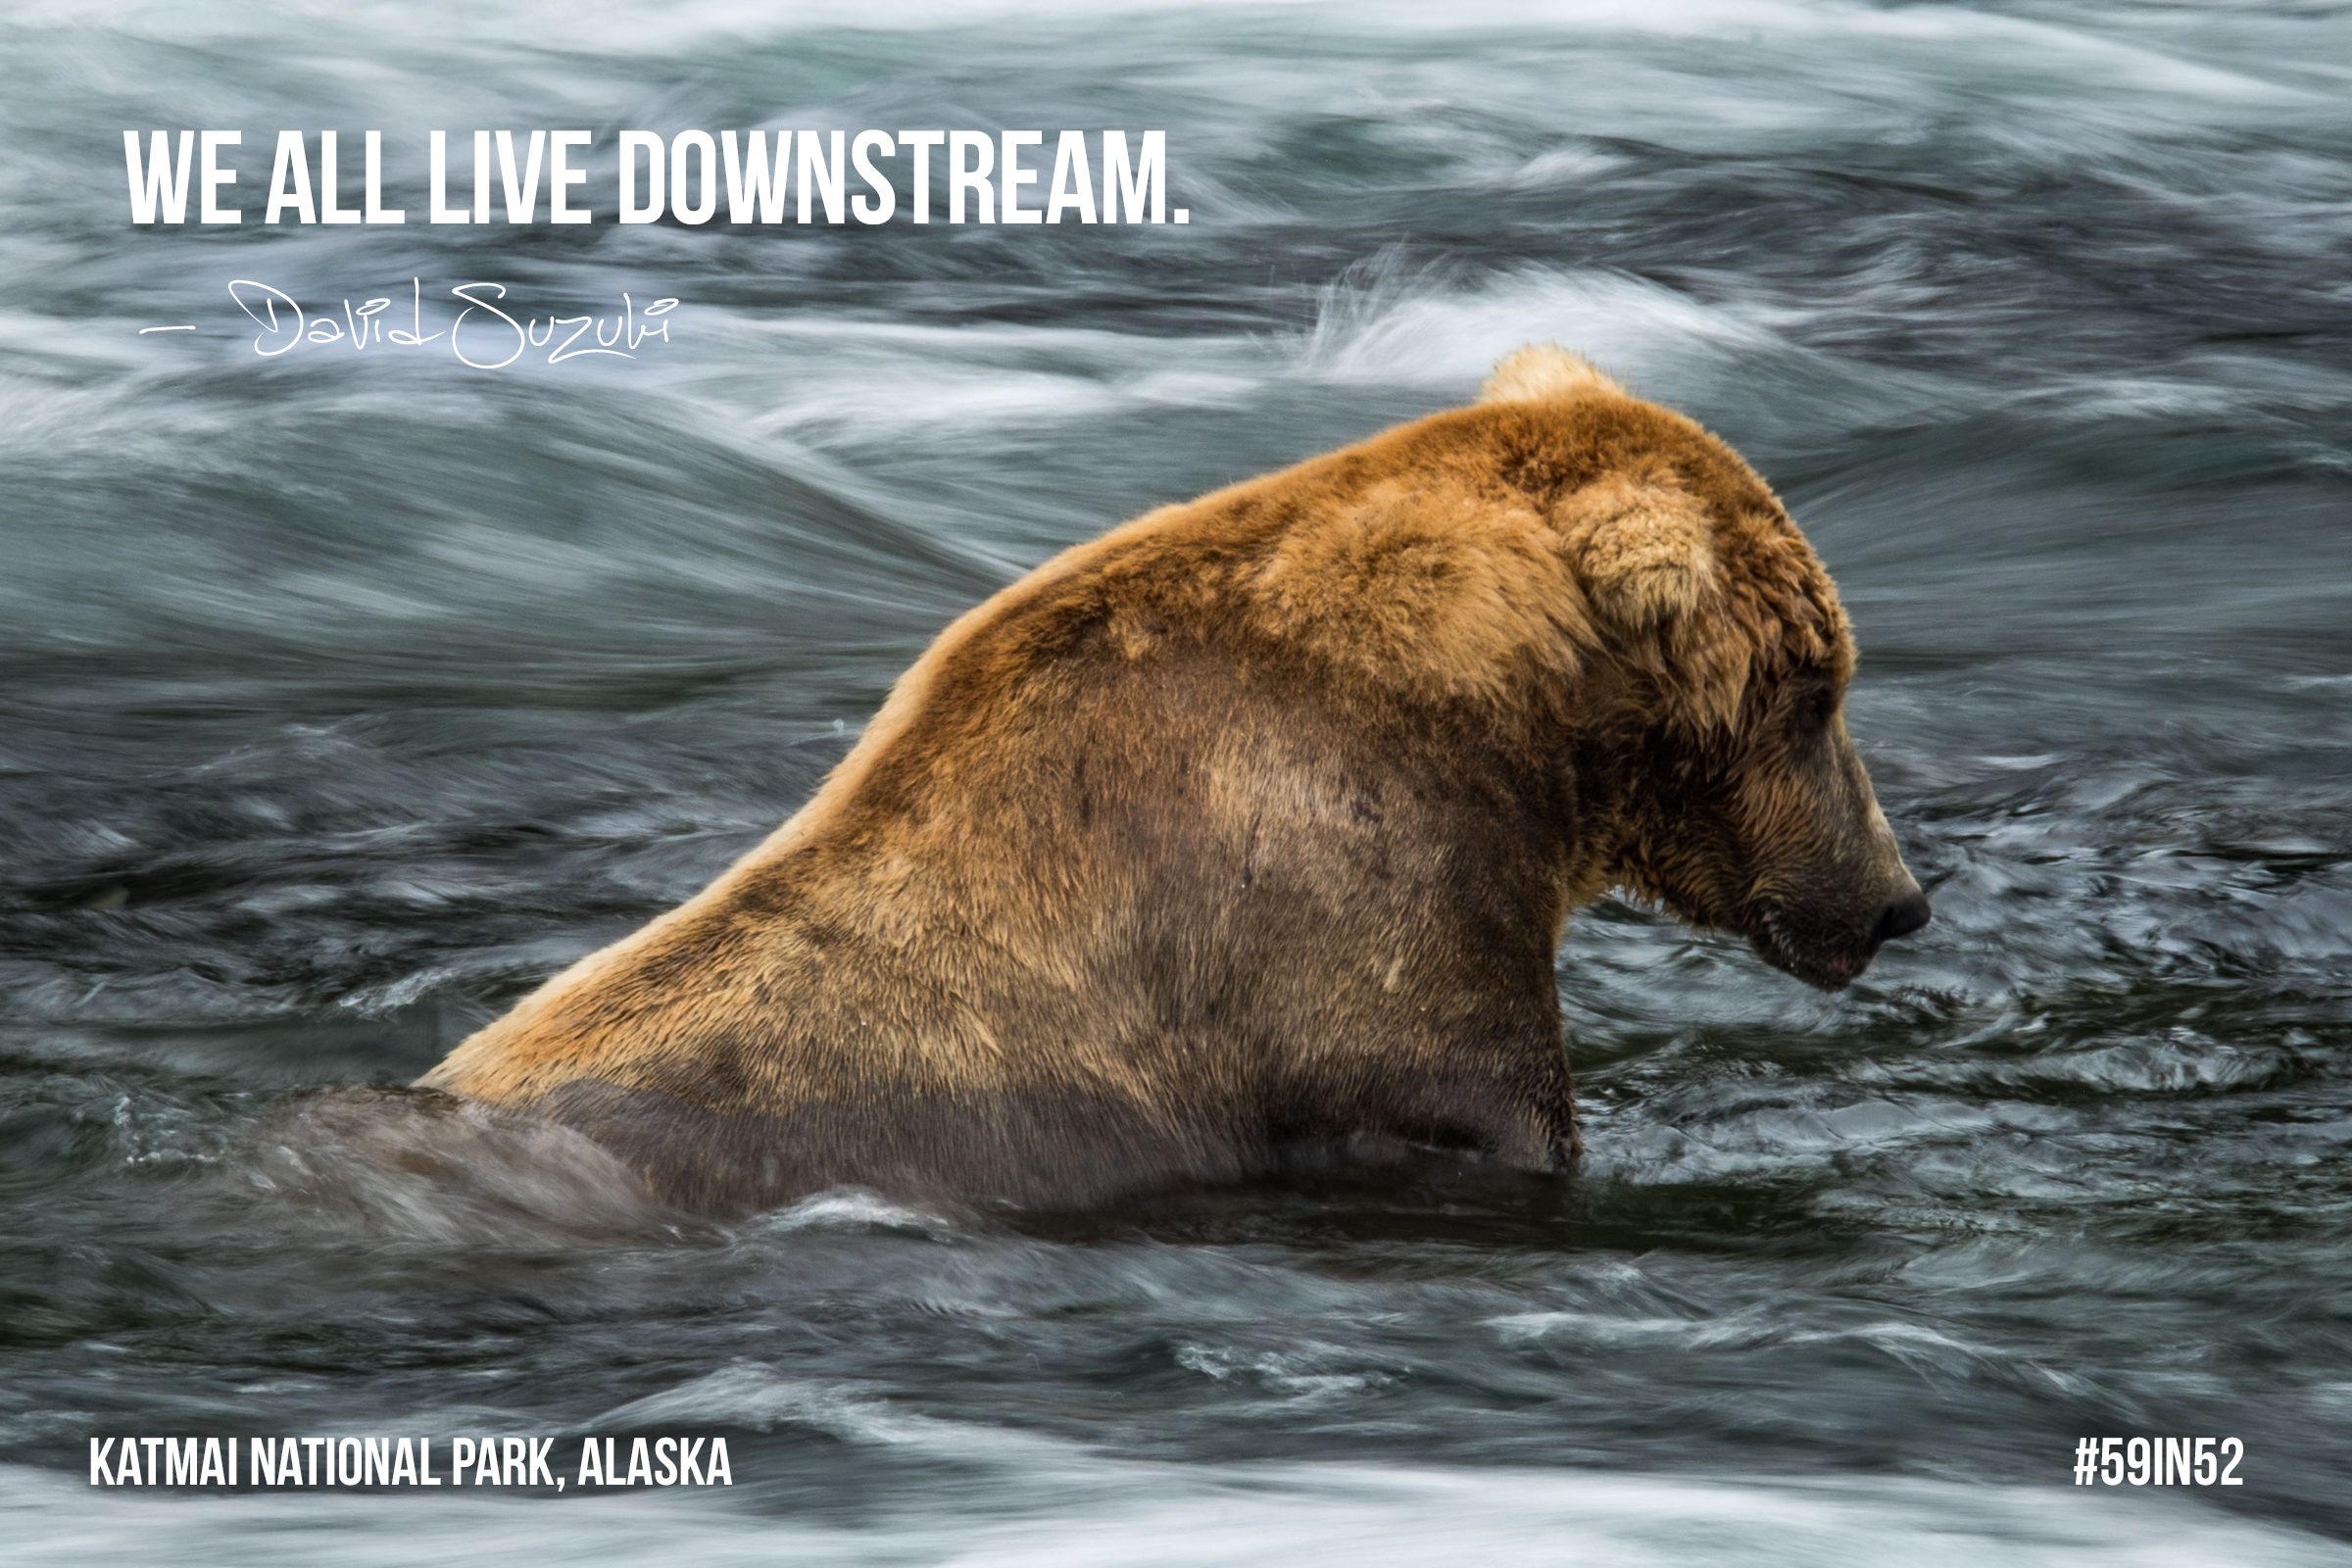 """We all live downstream."" David Suzuki"